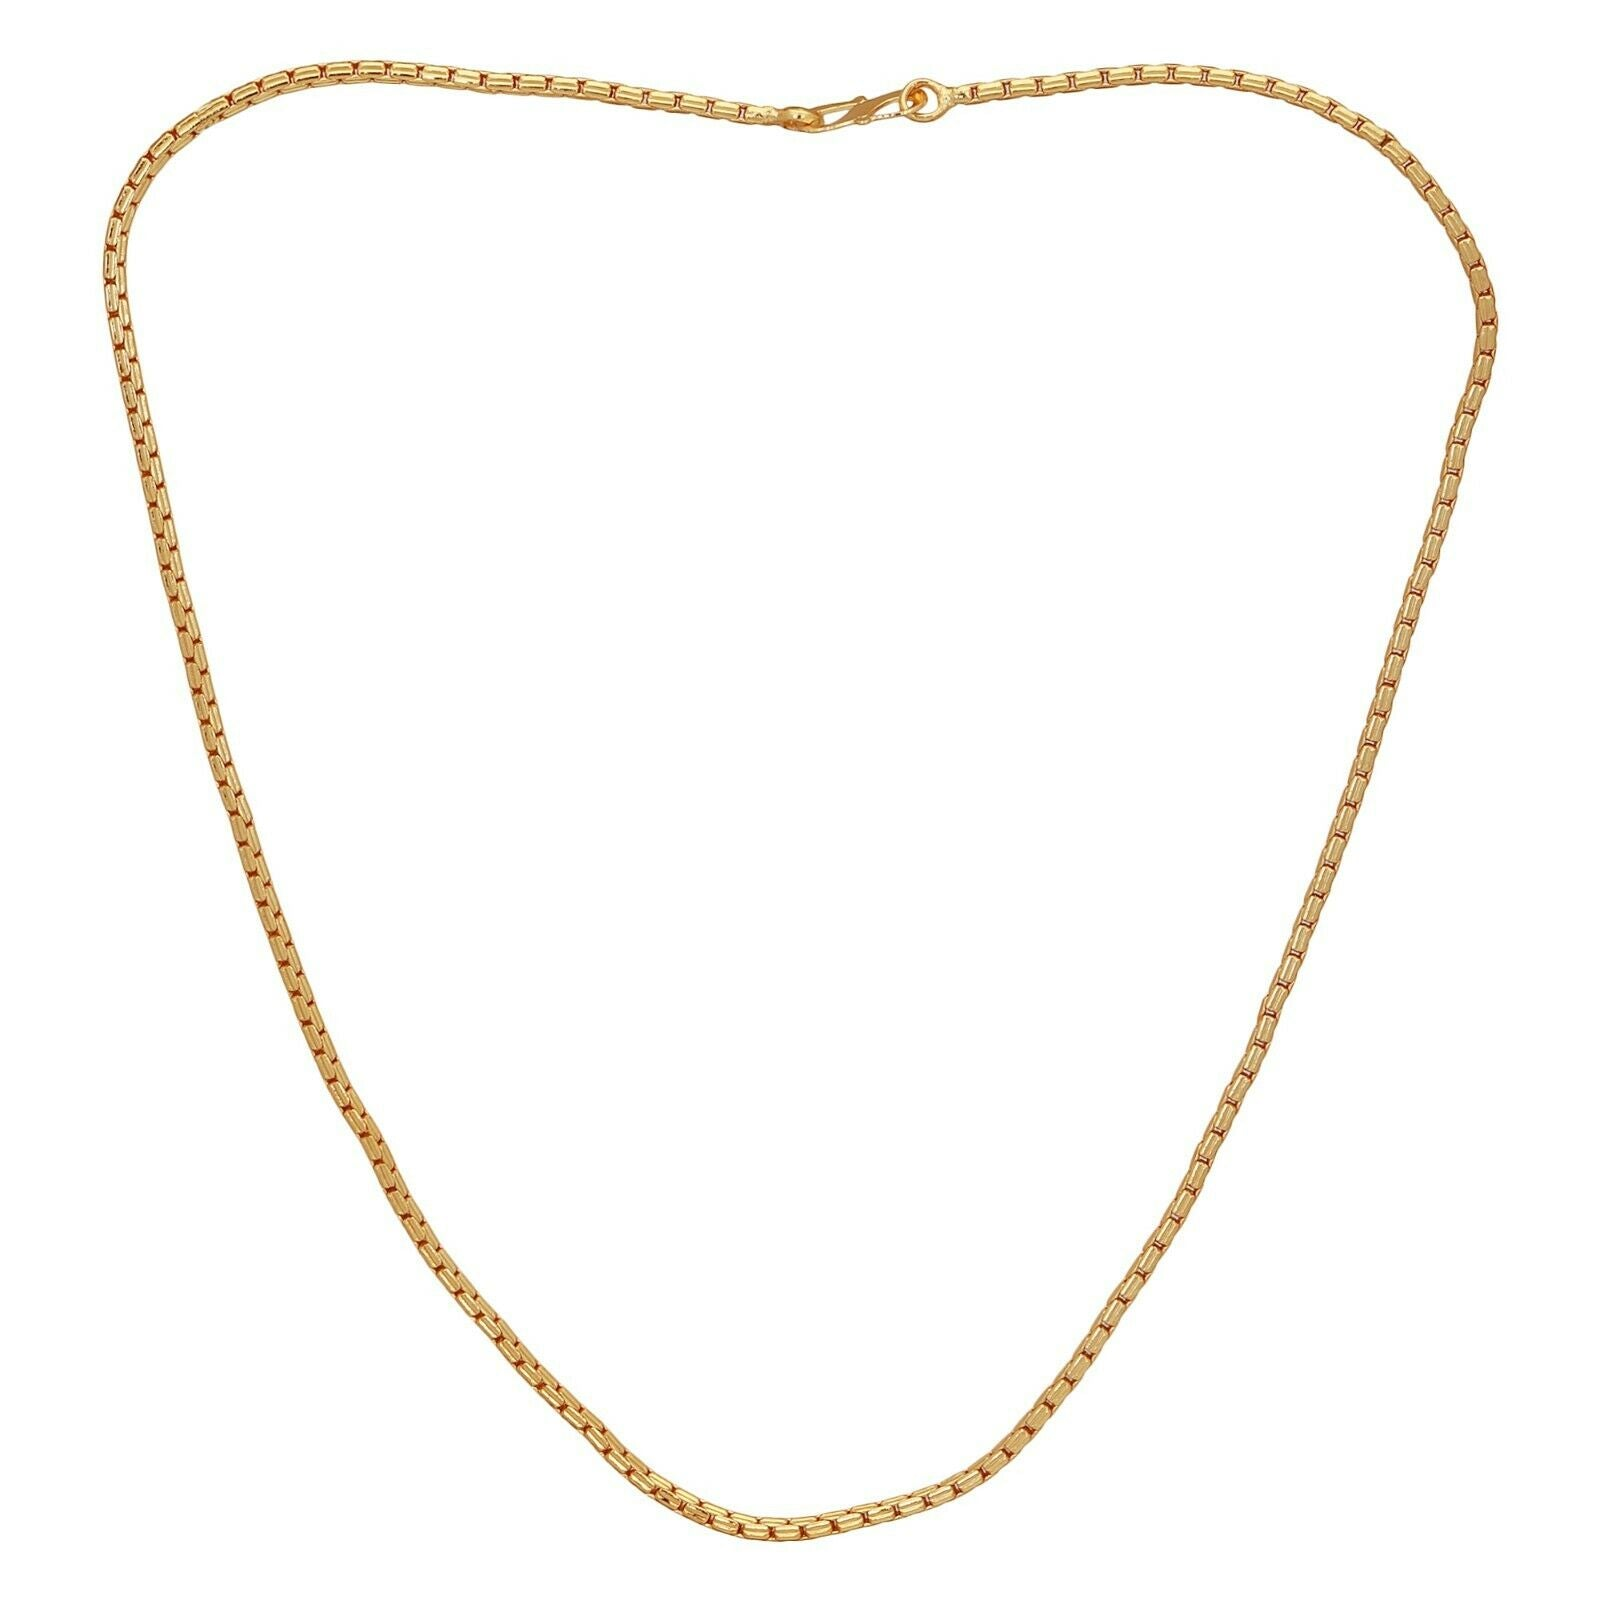 "22k Indian Gold Plated Necklace 20"" Long Chain Bollywood Unisex Fashion Jewelry"